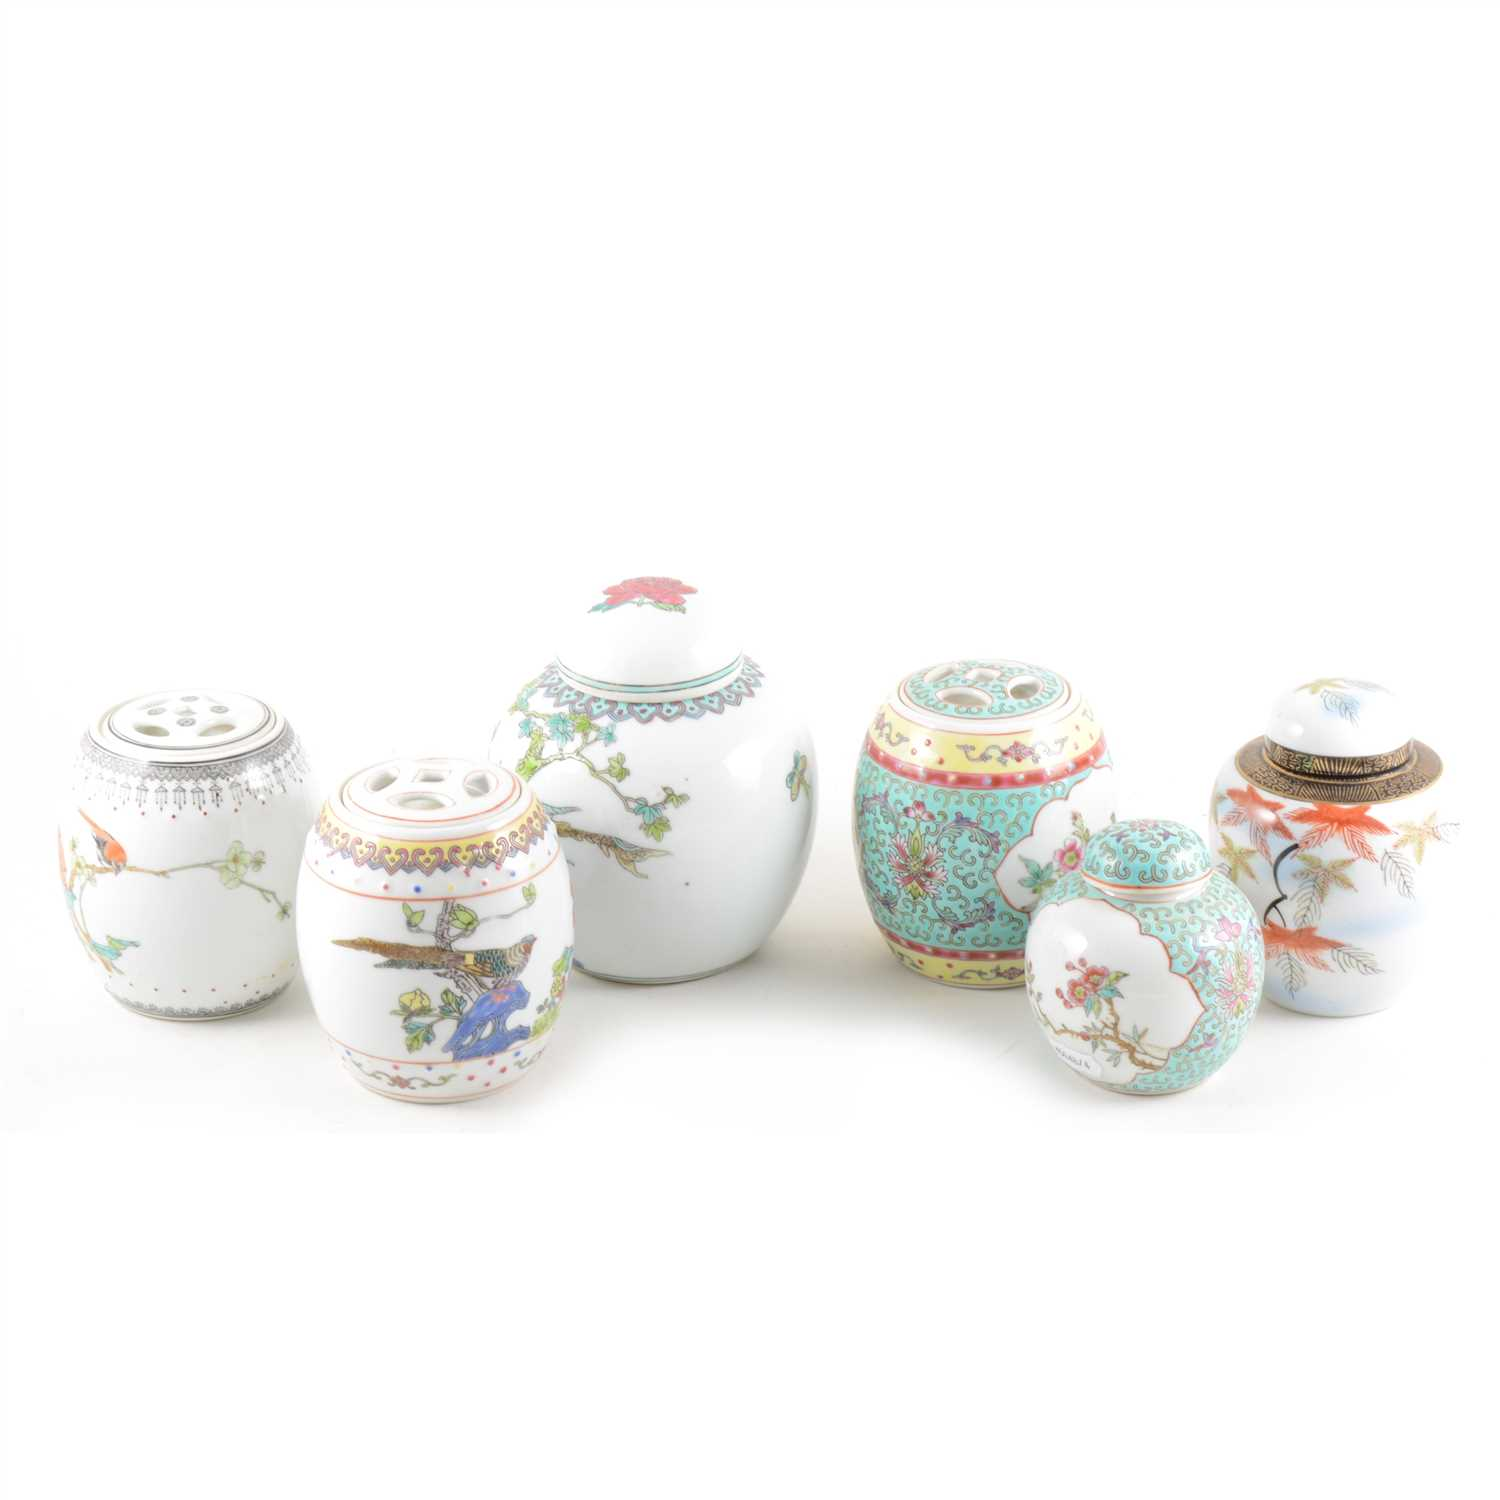 Lot 11-A collection of ginger jars, an Imari plate and another chinoiserie plate.